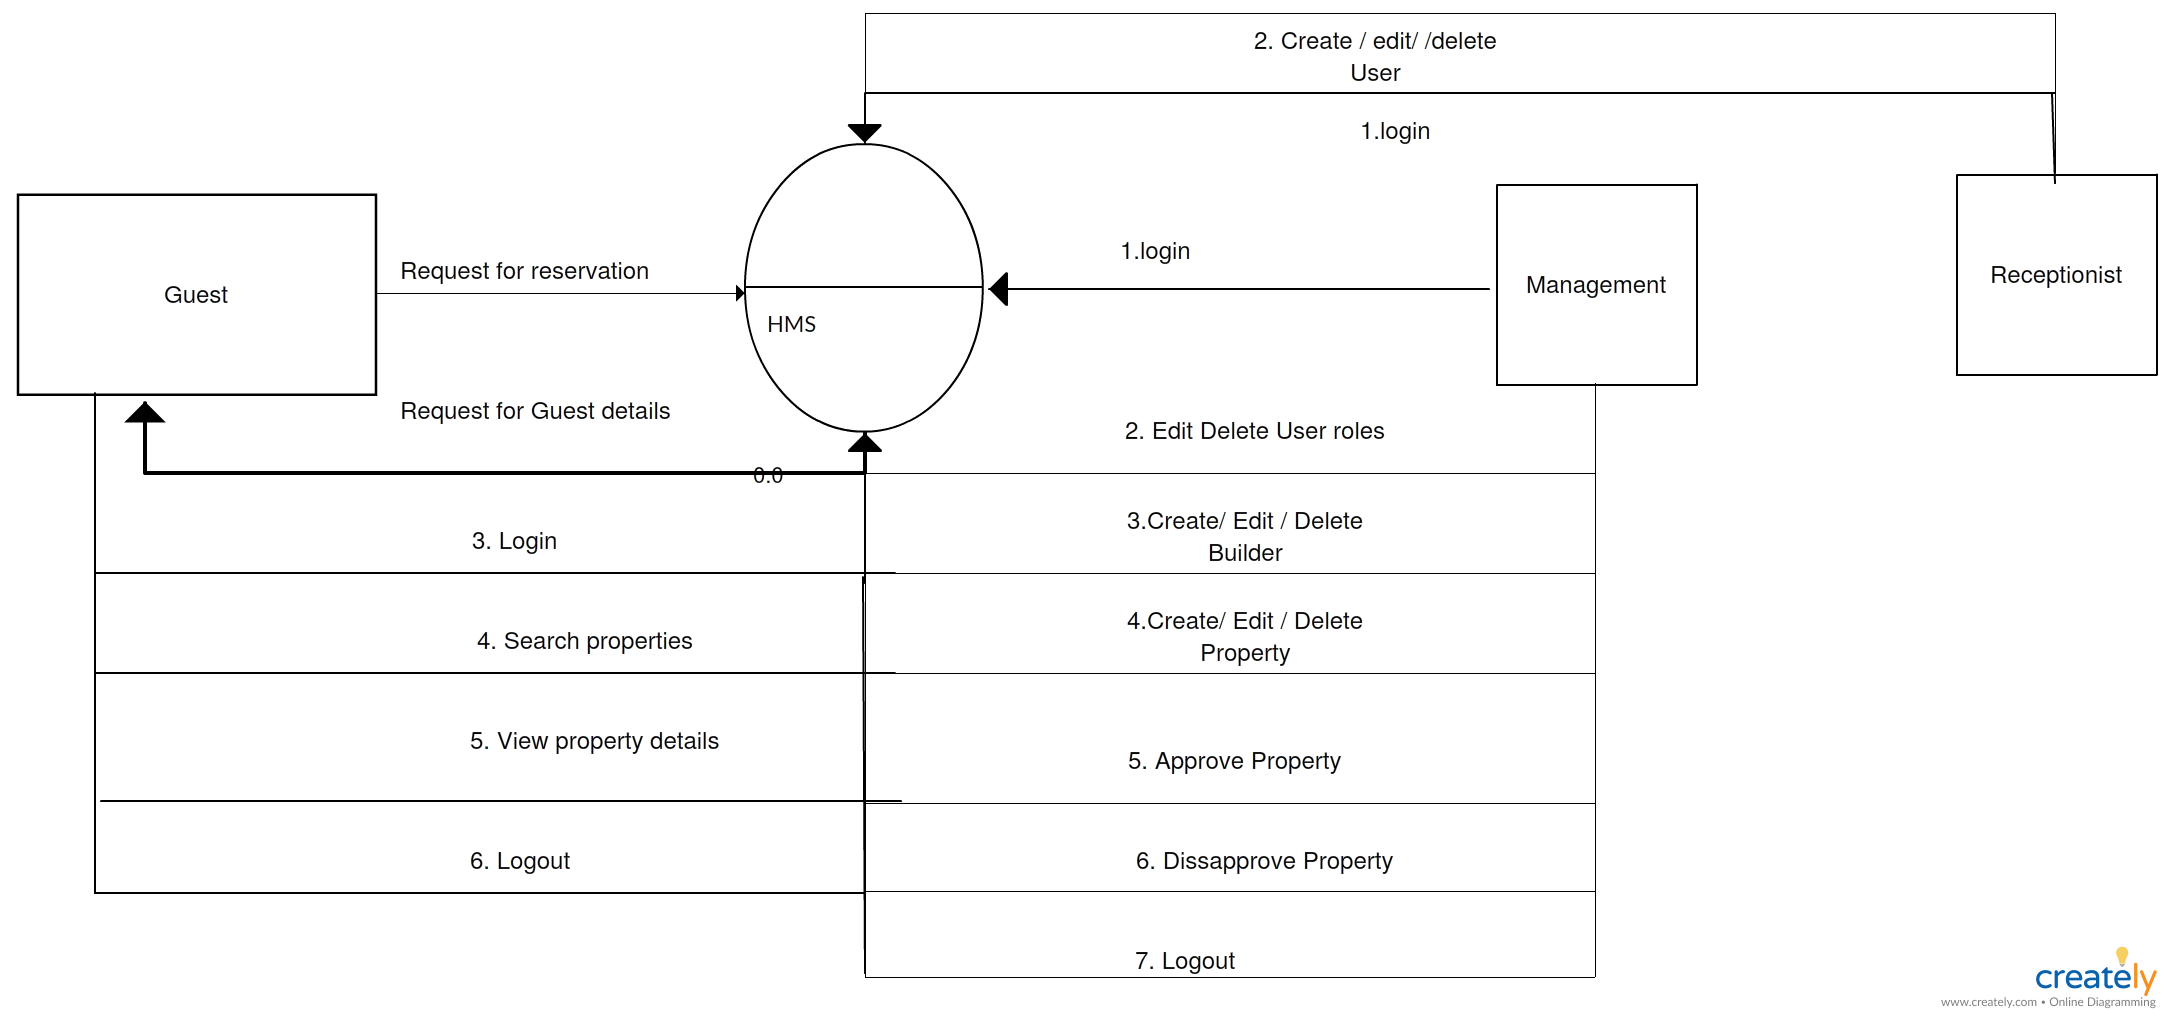 medium resolution of data flow diagram dfd gs of hotel management system click on the image to use this as a template and modify the flow as per your requirement